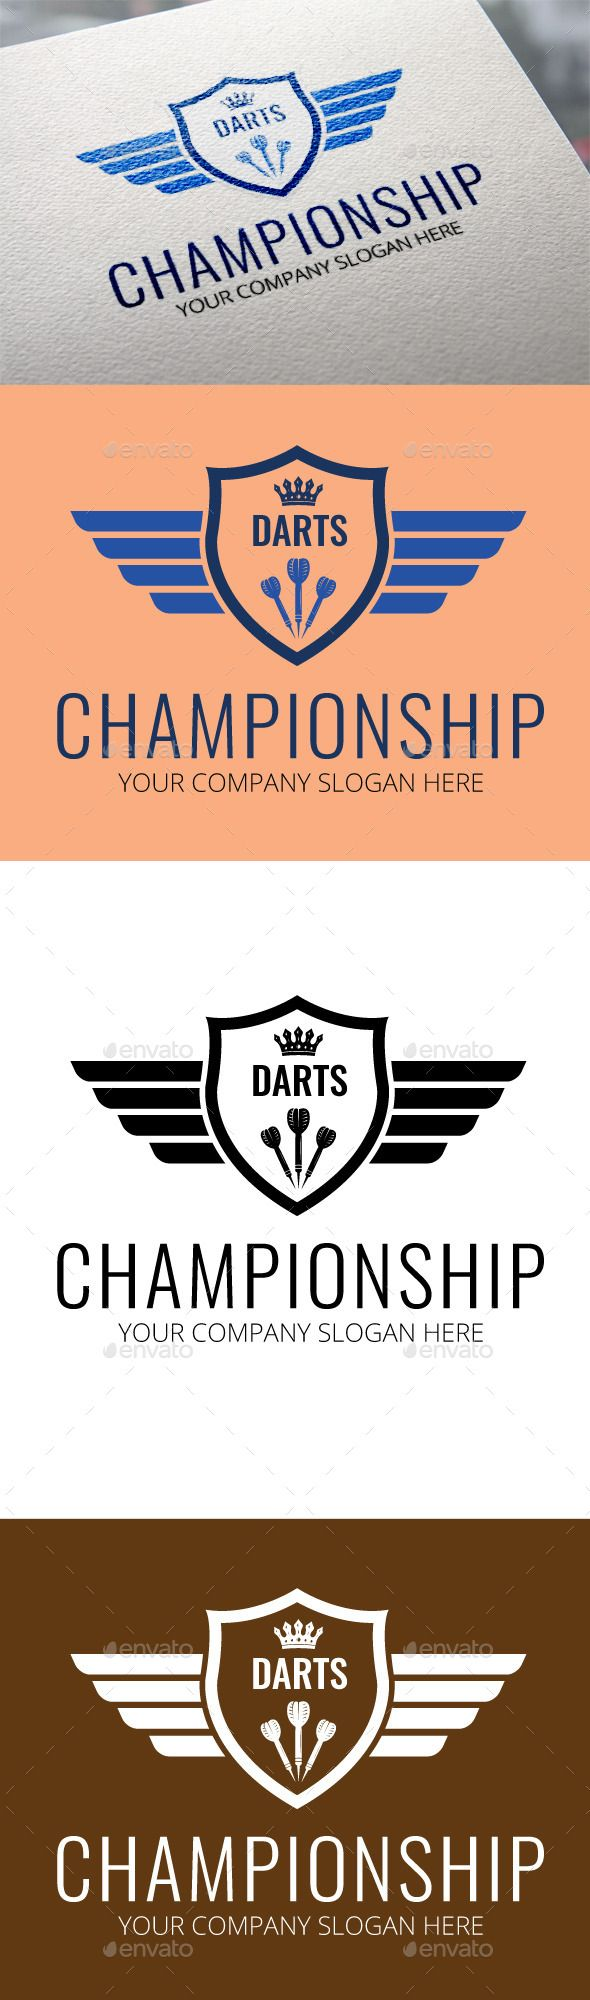 Darts Championship Logo Template by pixelscube Logo of Darts Championship. It can be used for darts sports or business and company. CMYK, Full vectors, this logo can be easily